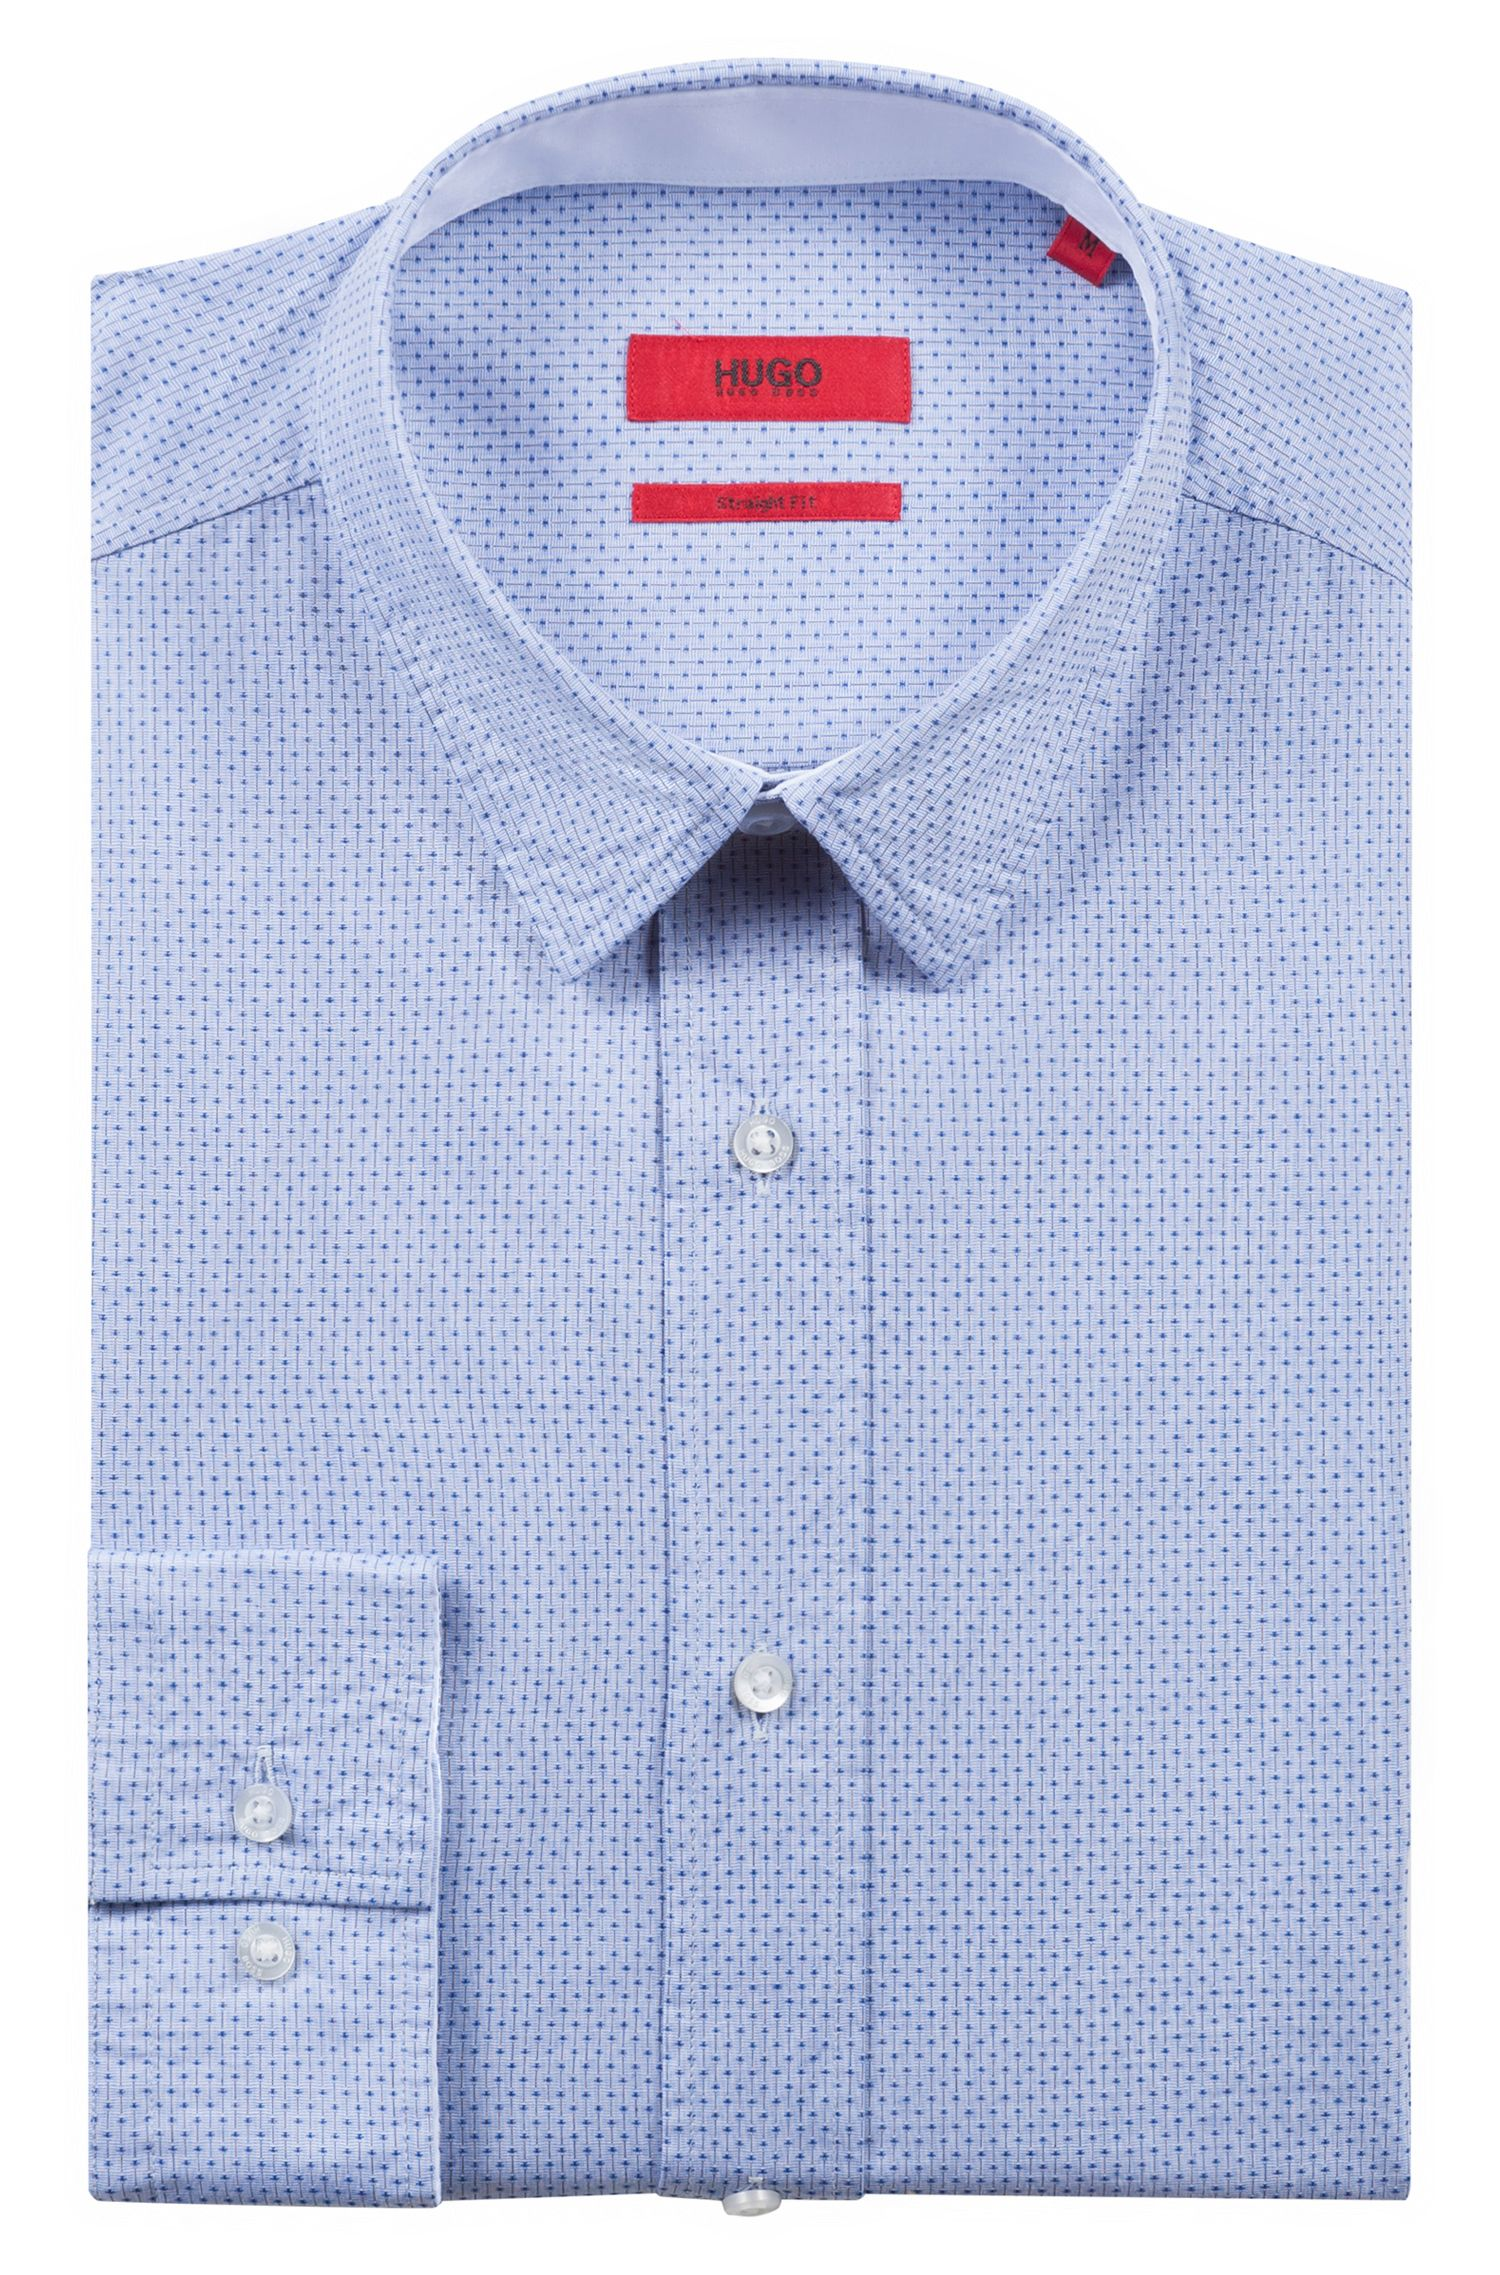 Relaxed-fit cotton shirt with a structured stripe pattern | Evory, Dark Blue